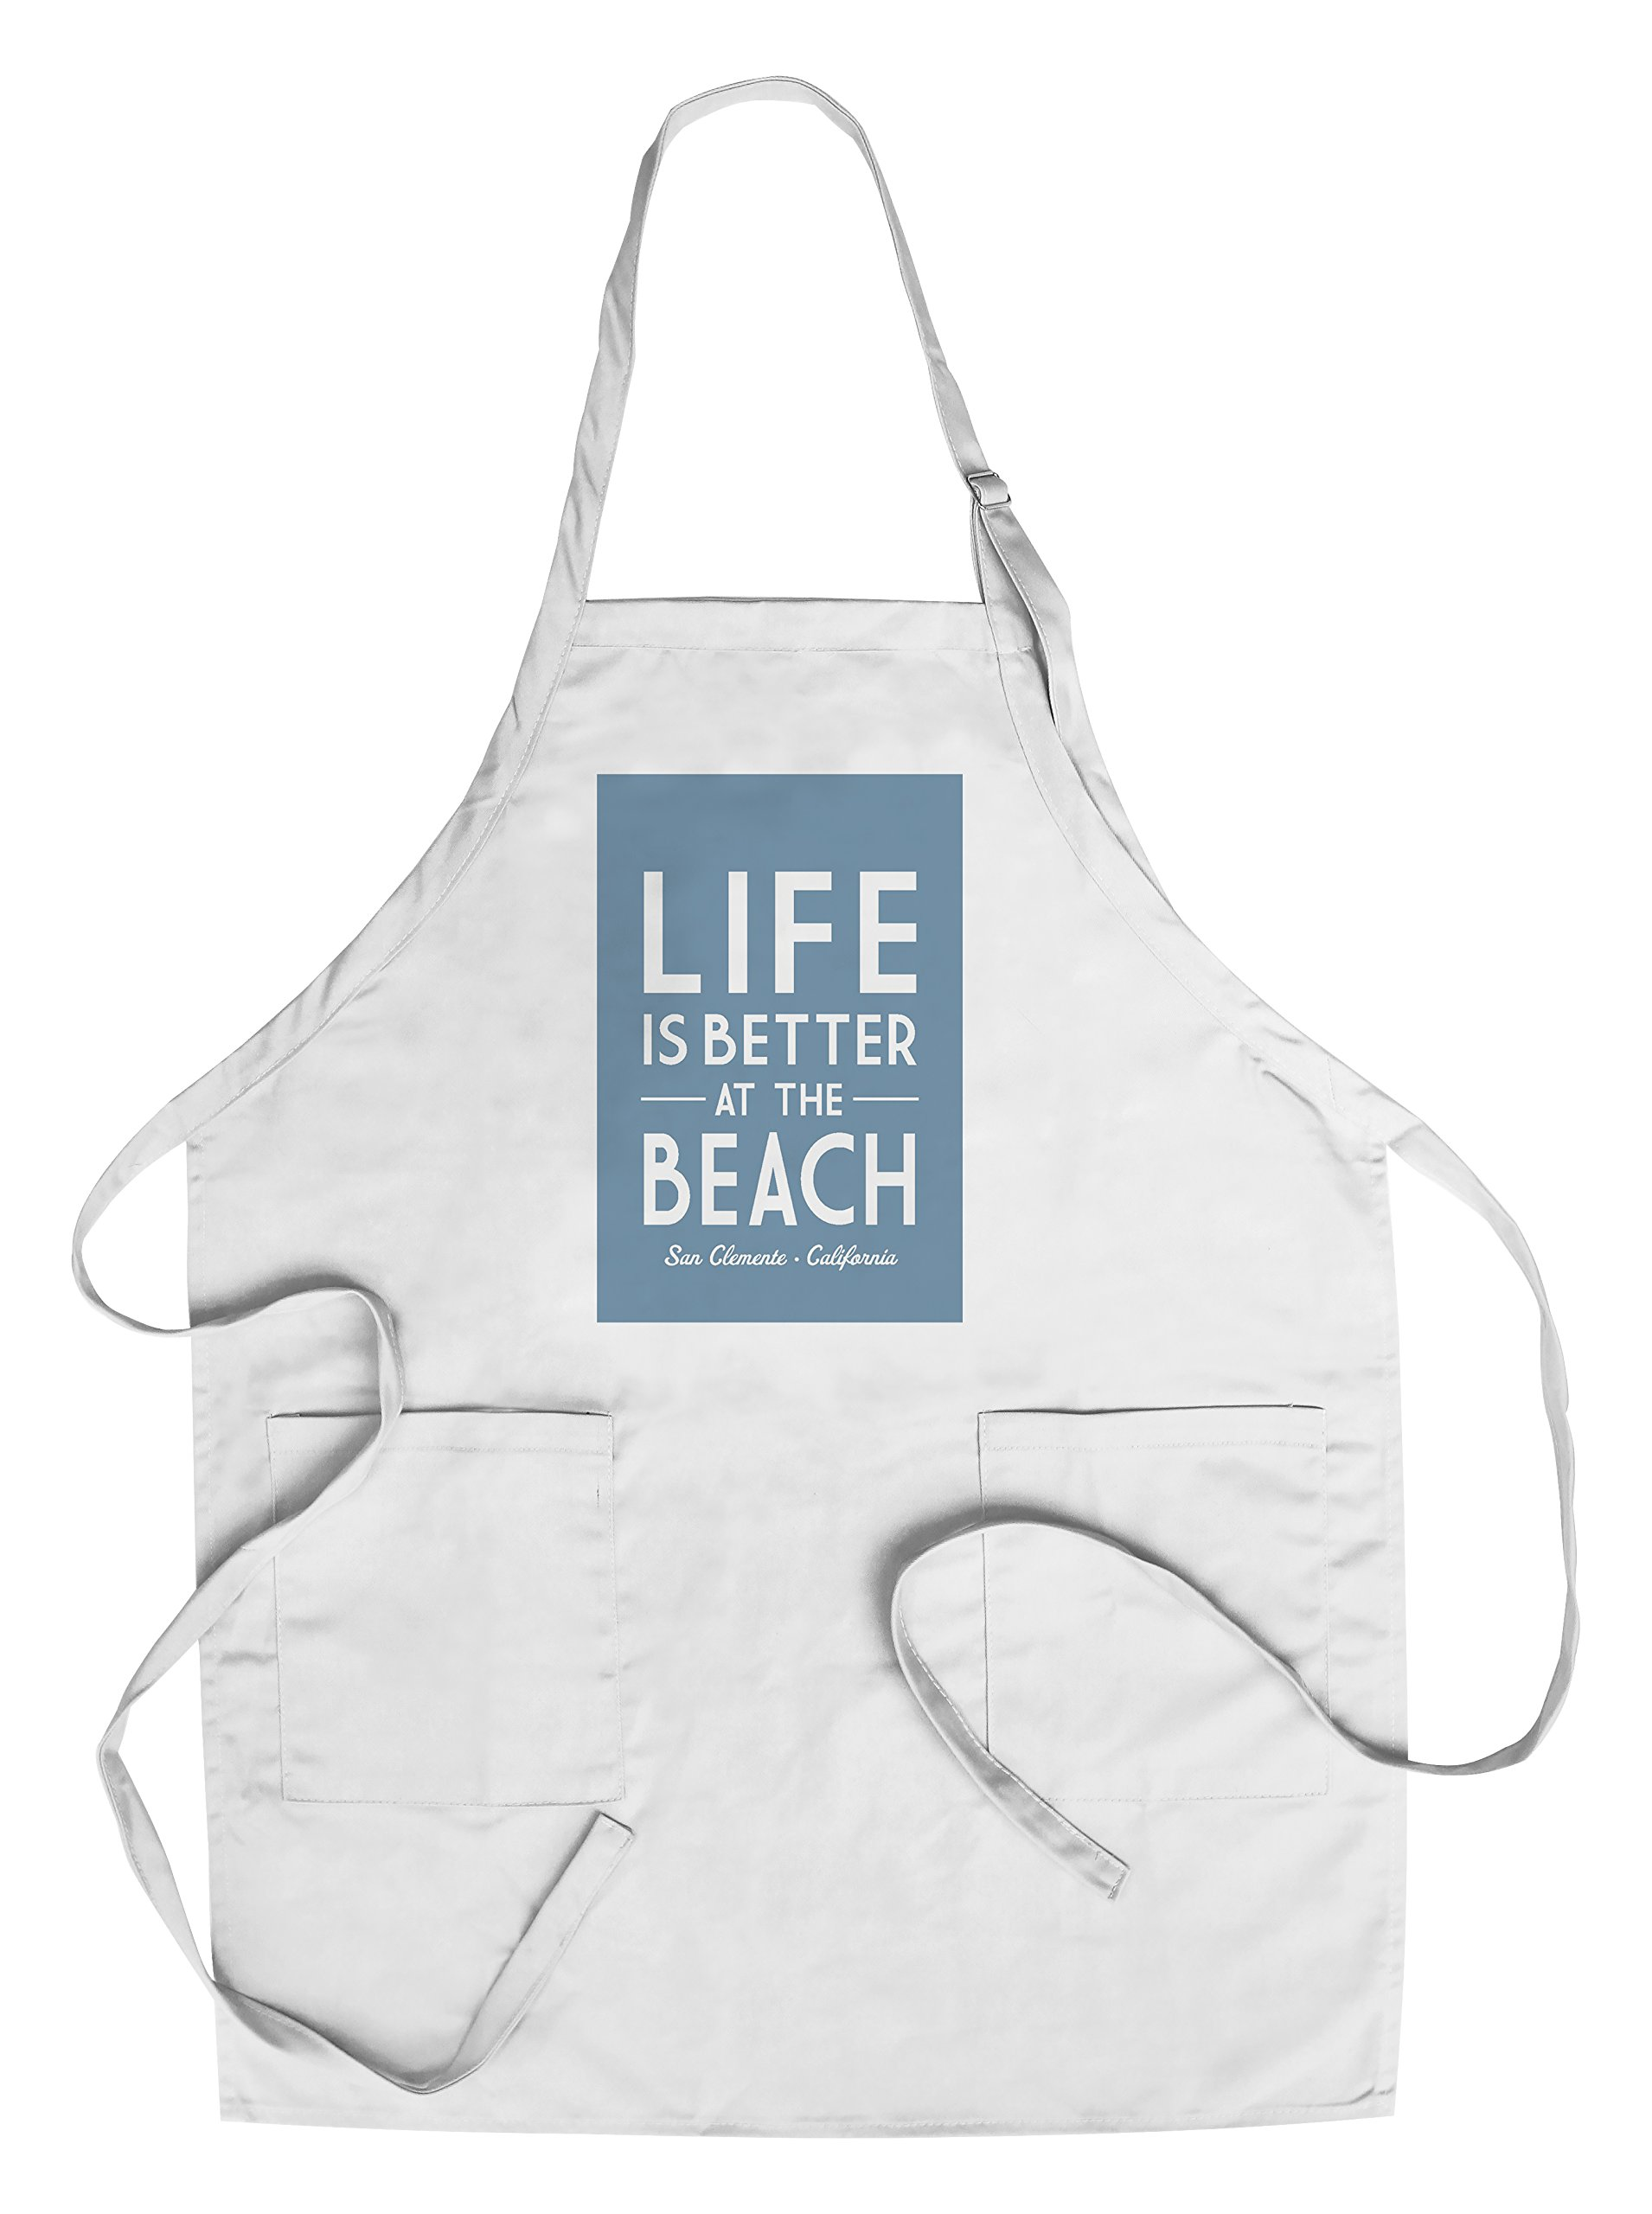 Santa Clemente, California - Life is Better At The Beach - Simply Said (Cotton/Polyester Chef's Apron)